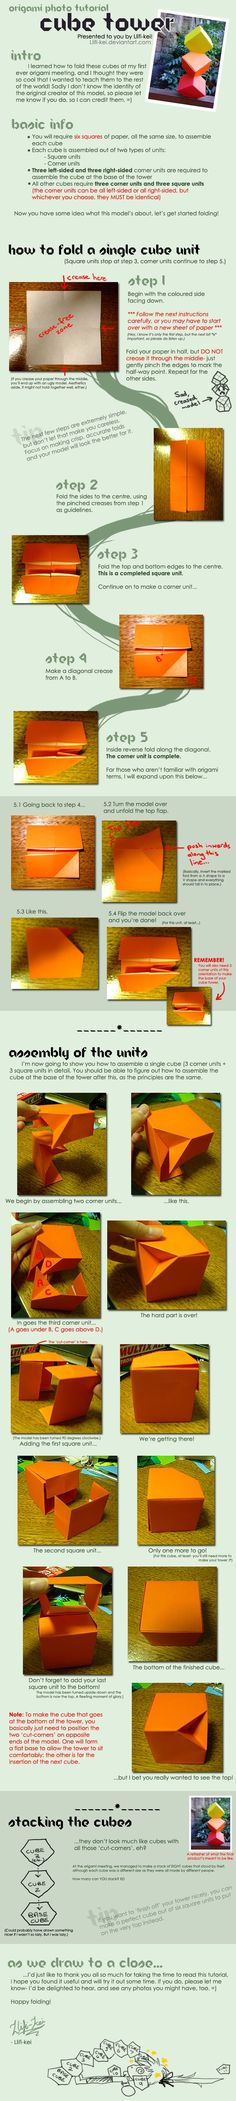 Instructions for Origami Cube Tower.  Cool.  As far as I can tell, origamiinstruction.com does not exist.